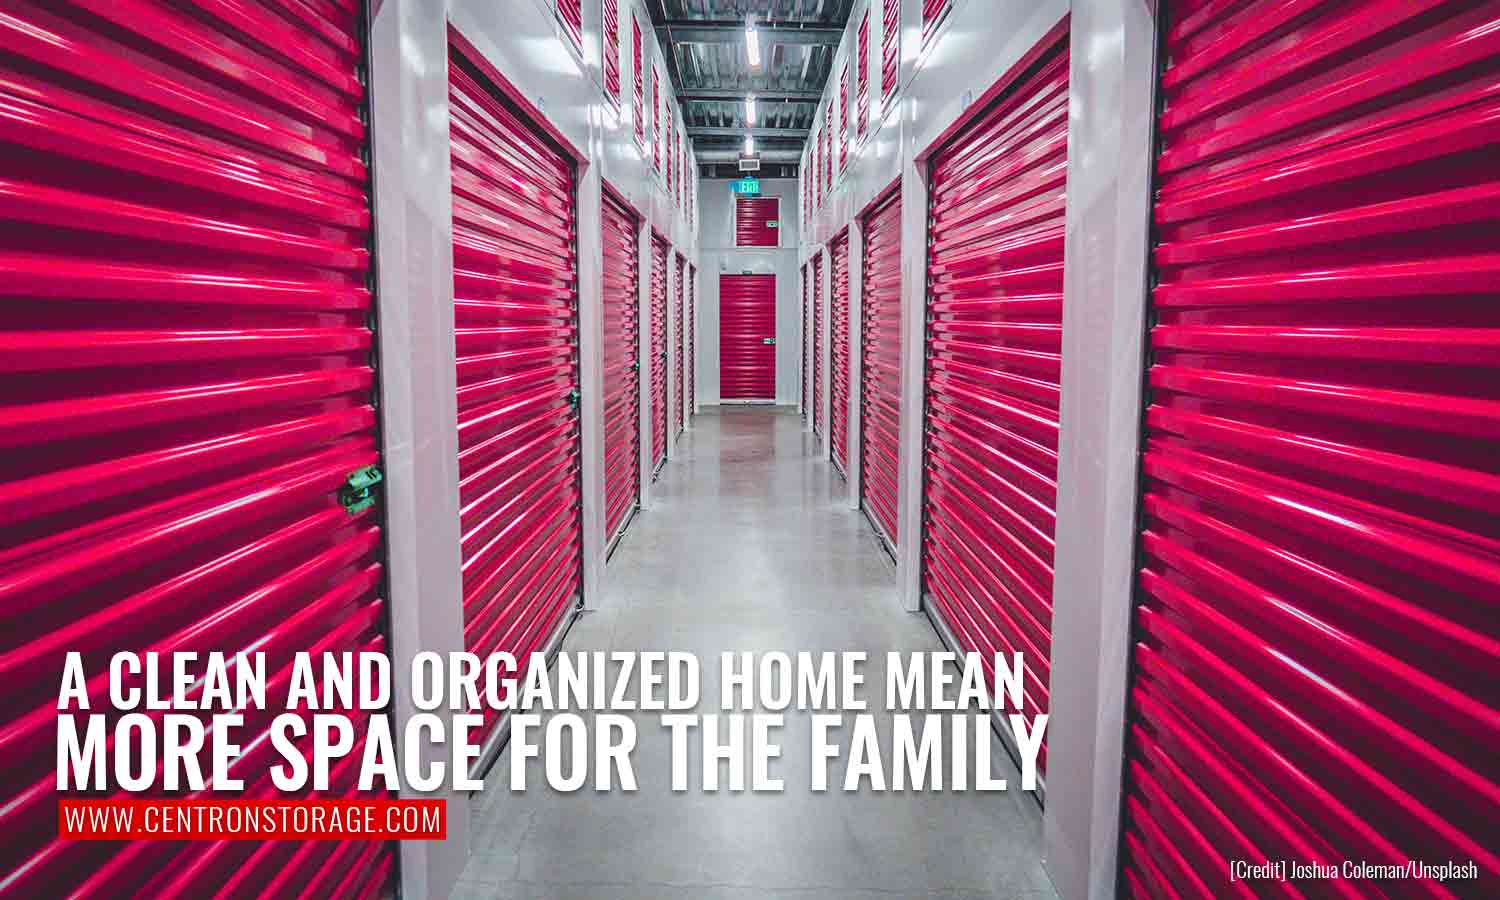 A clean and organized home means more space for the family